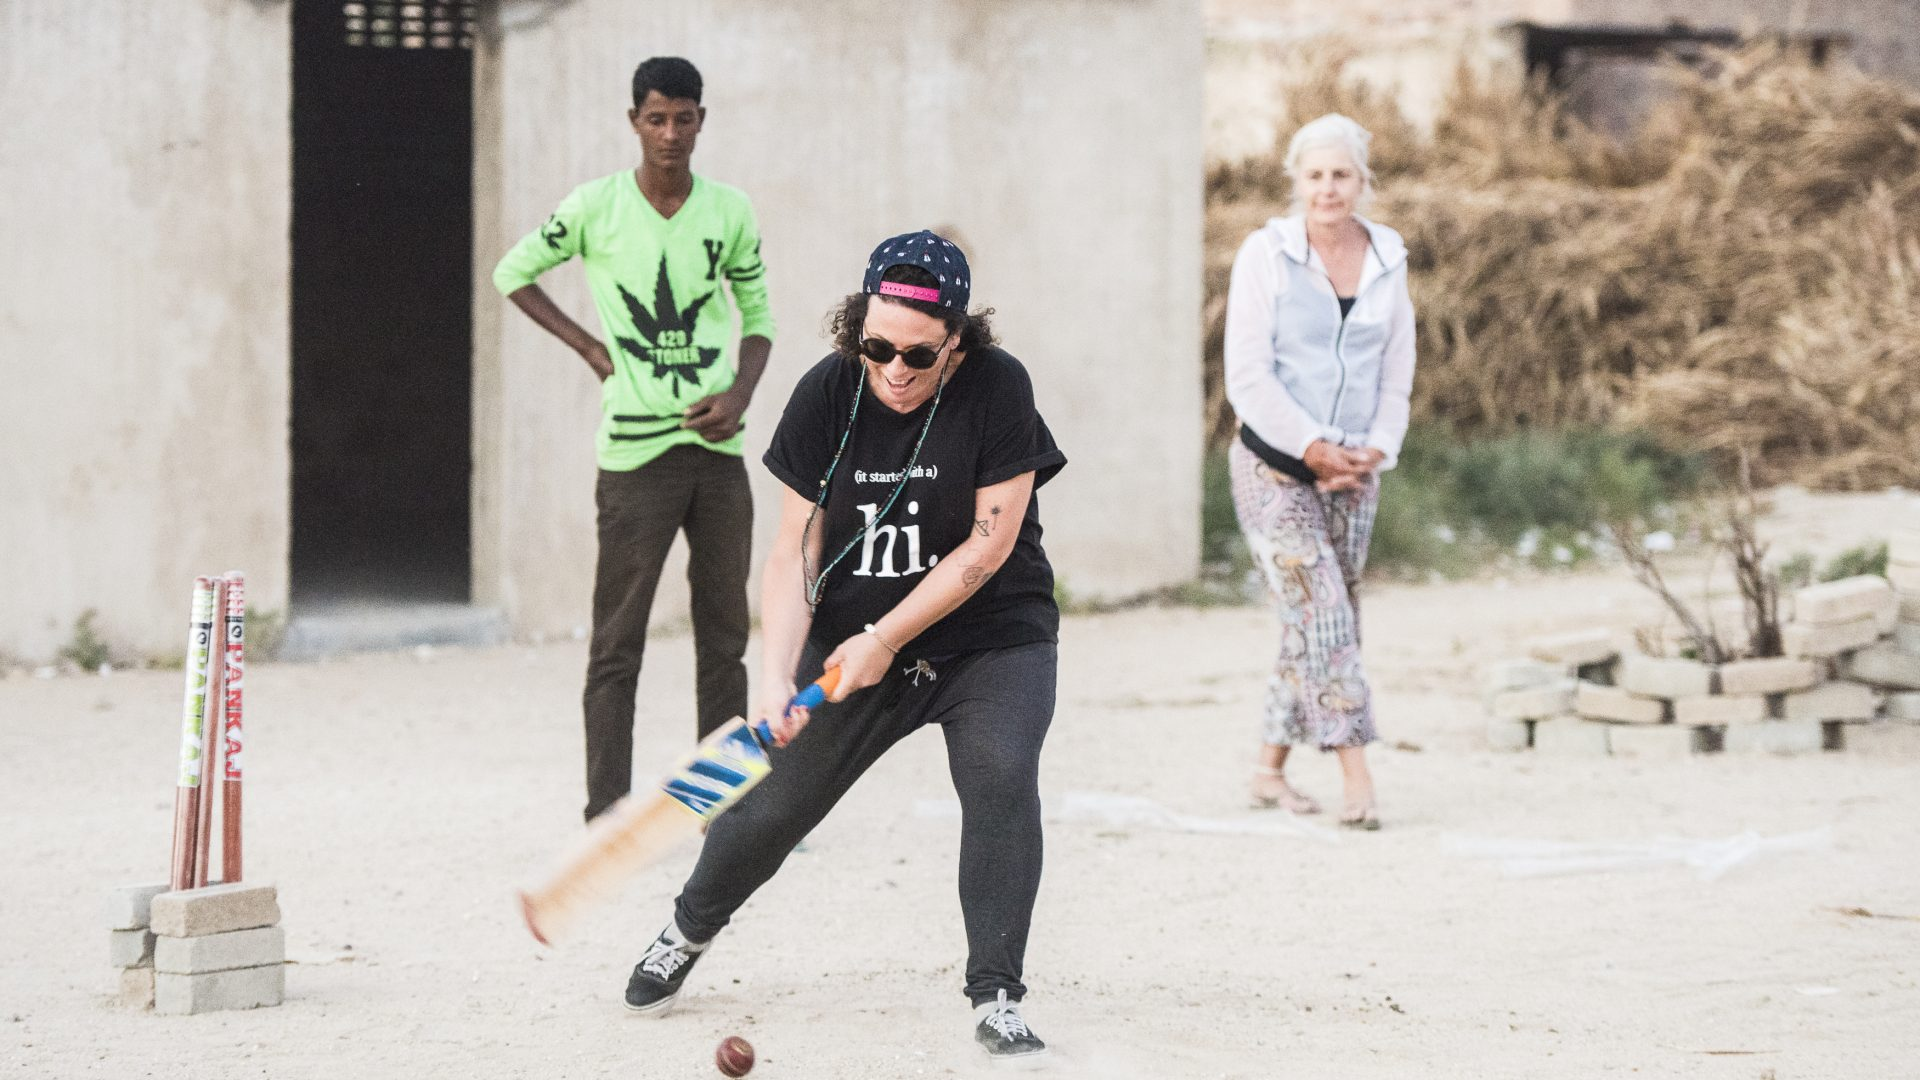 A tourist plays cricket with some locals in India